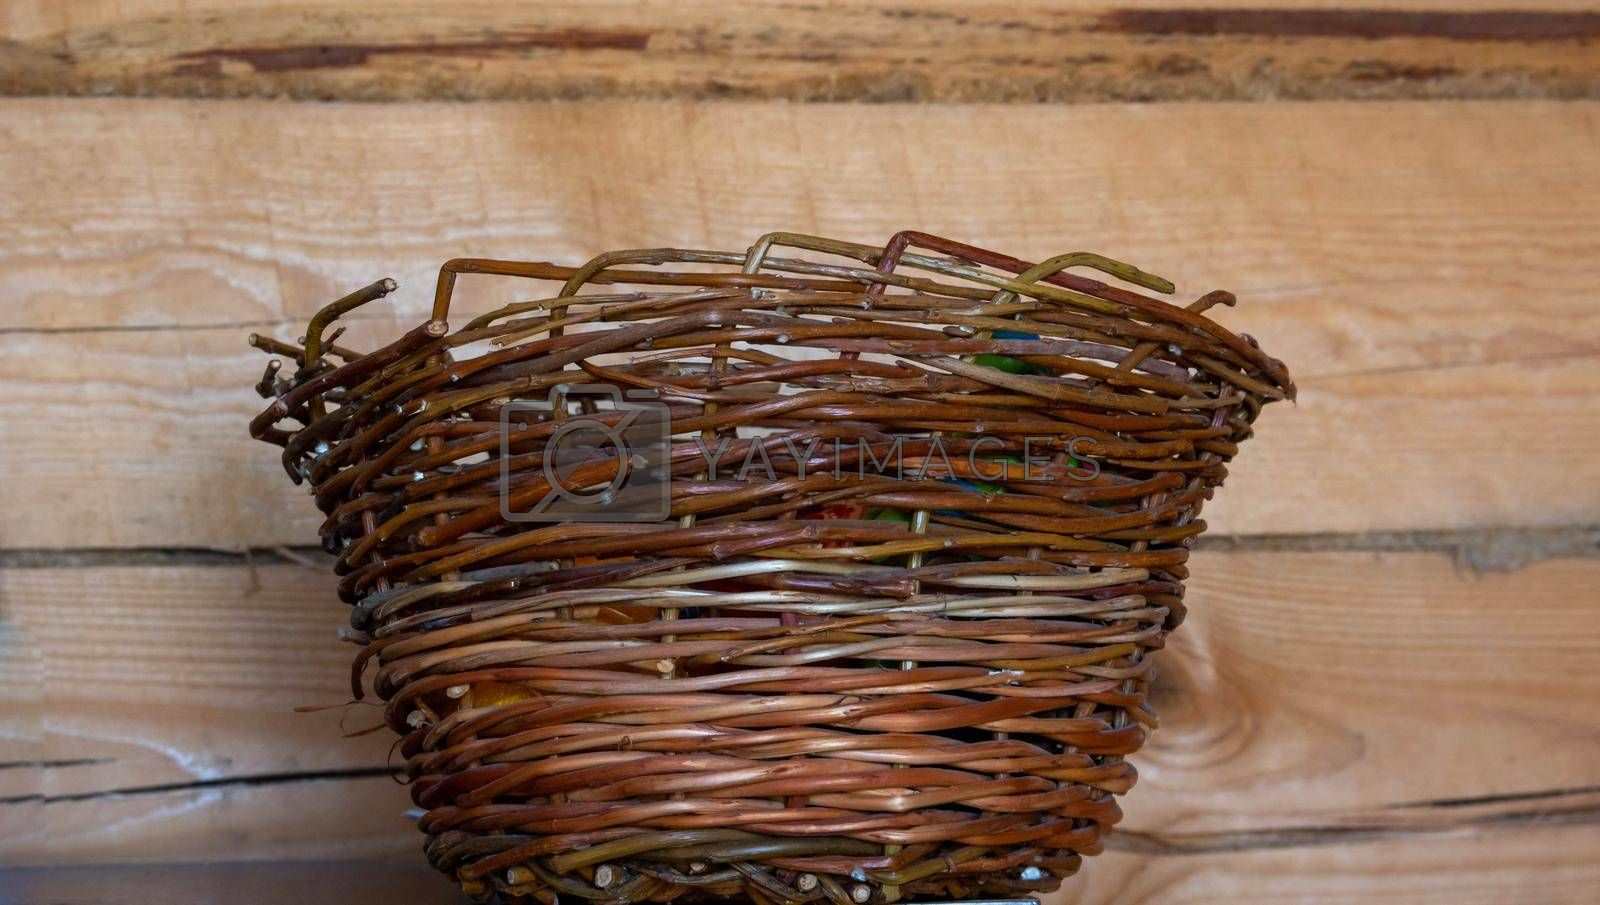 An empty wicker willow basket on a wooden background.